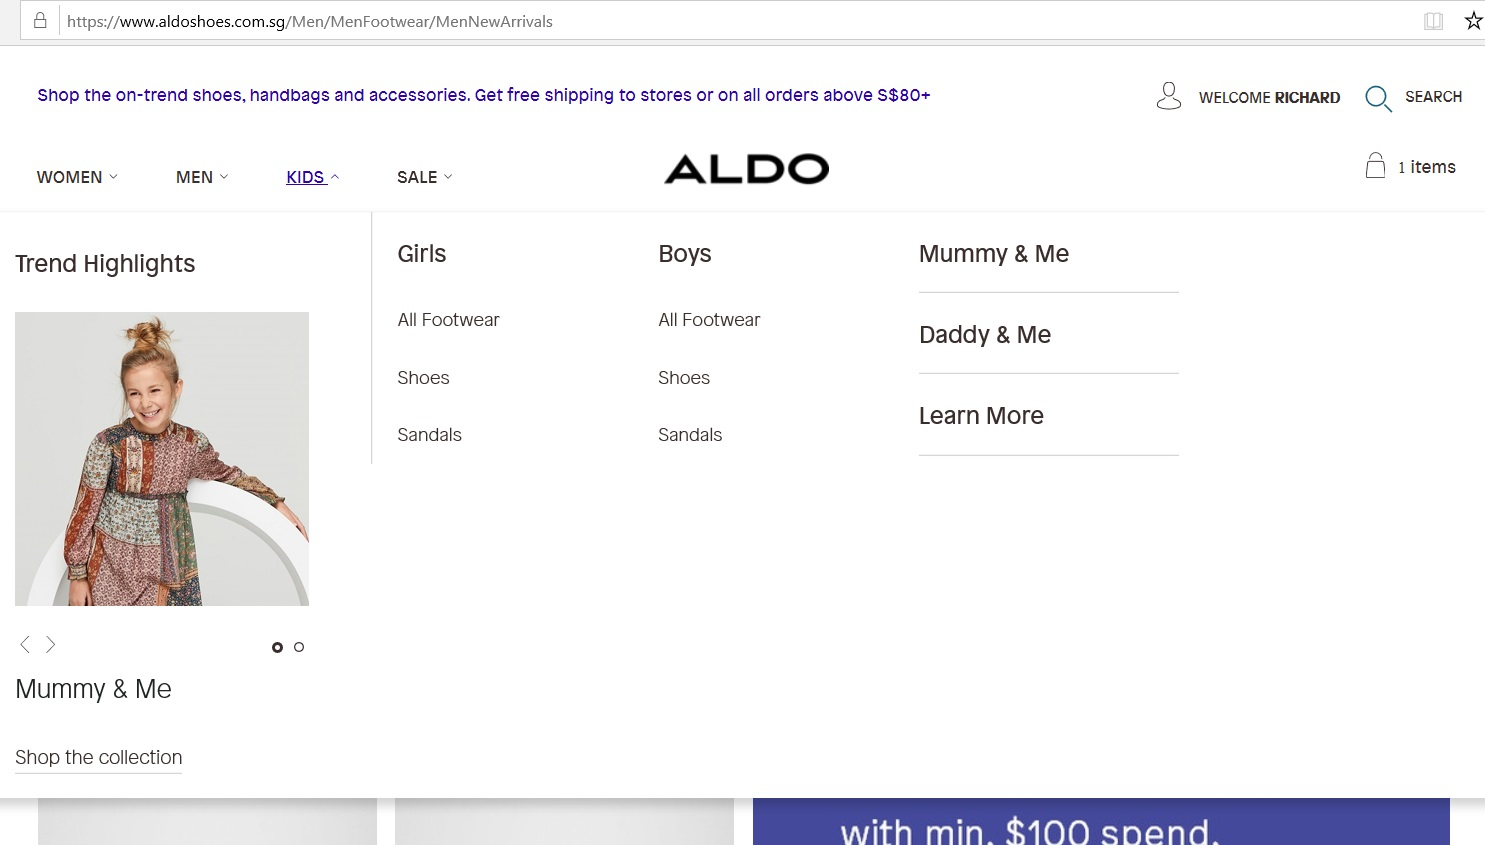 Aldo product category dropdown for Kids.